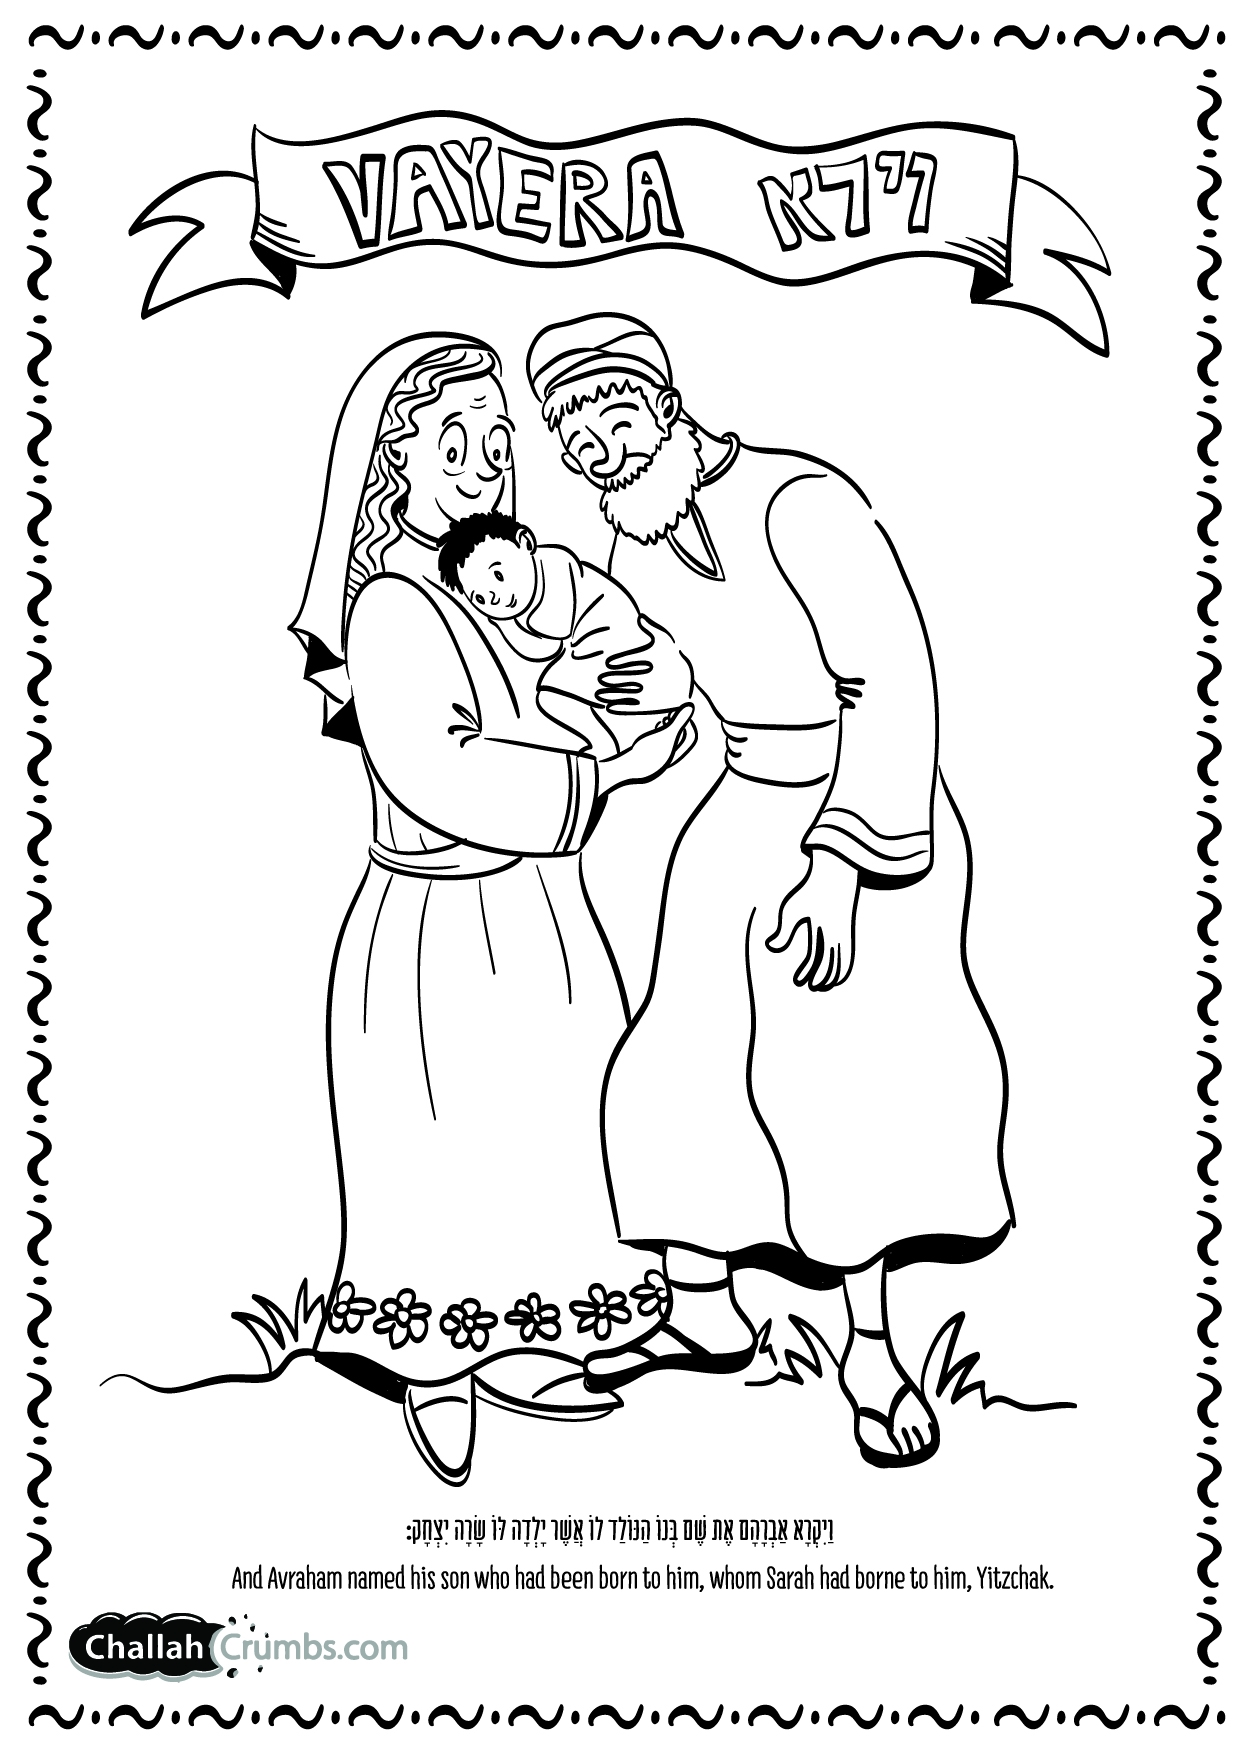 hanukkah coloring pages - coloring page parshat vayera click picture print